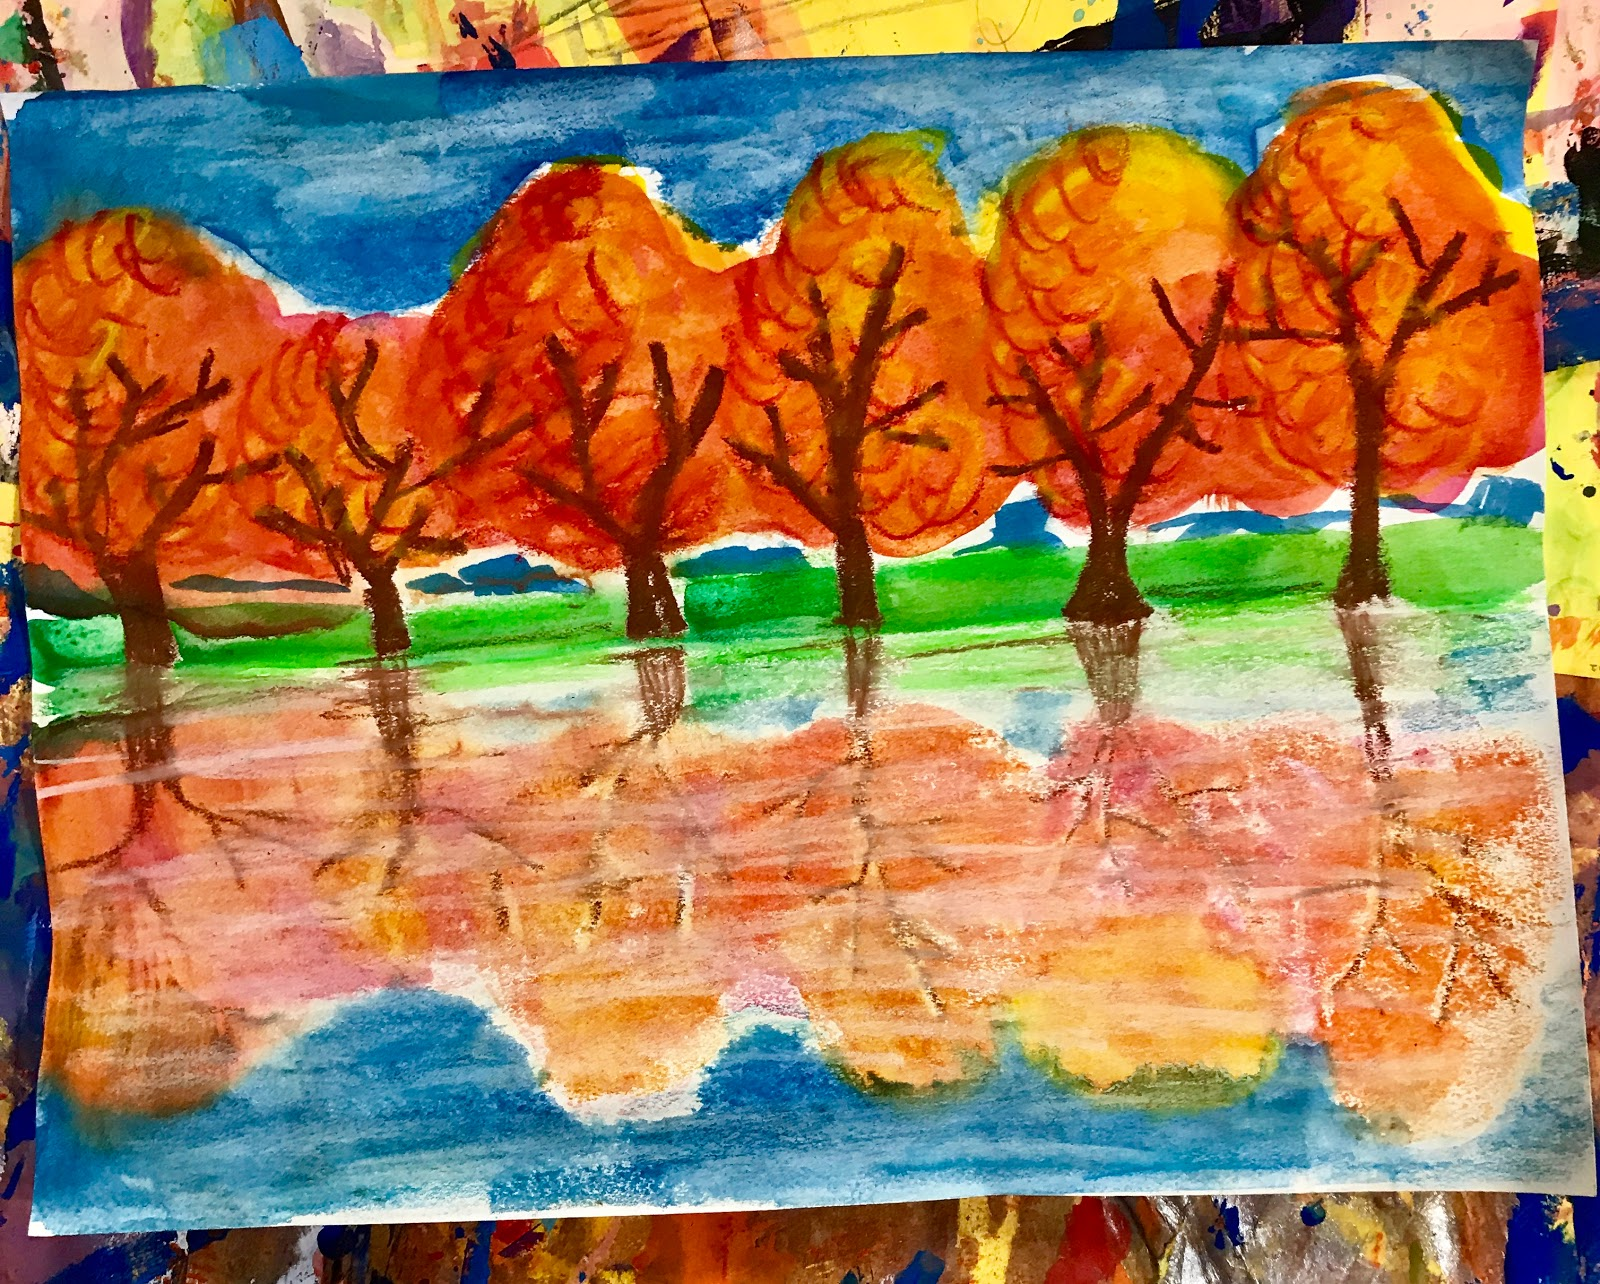 Elements Of Art Painting : Elements of the art room: 2nd grade fall reflections